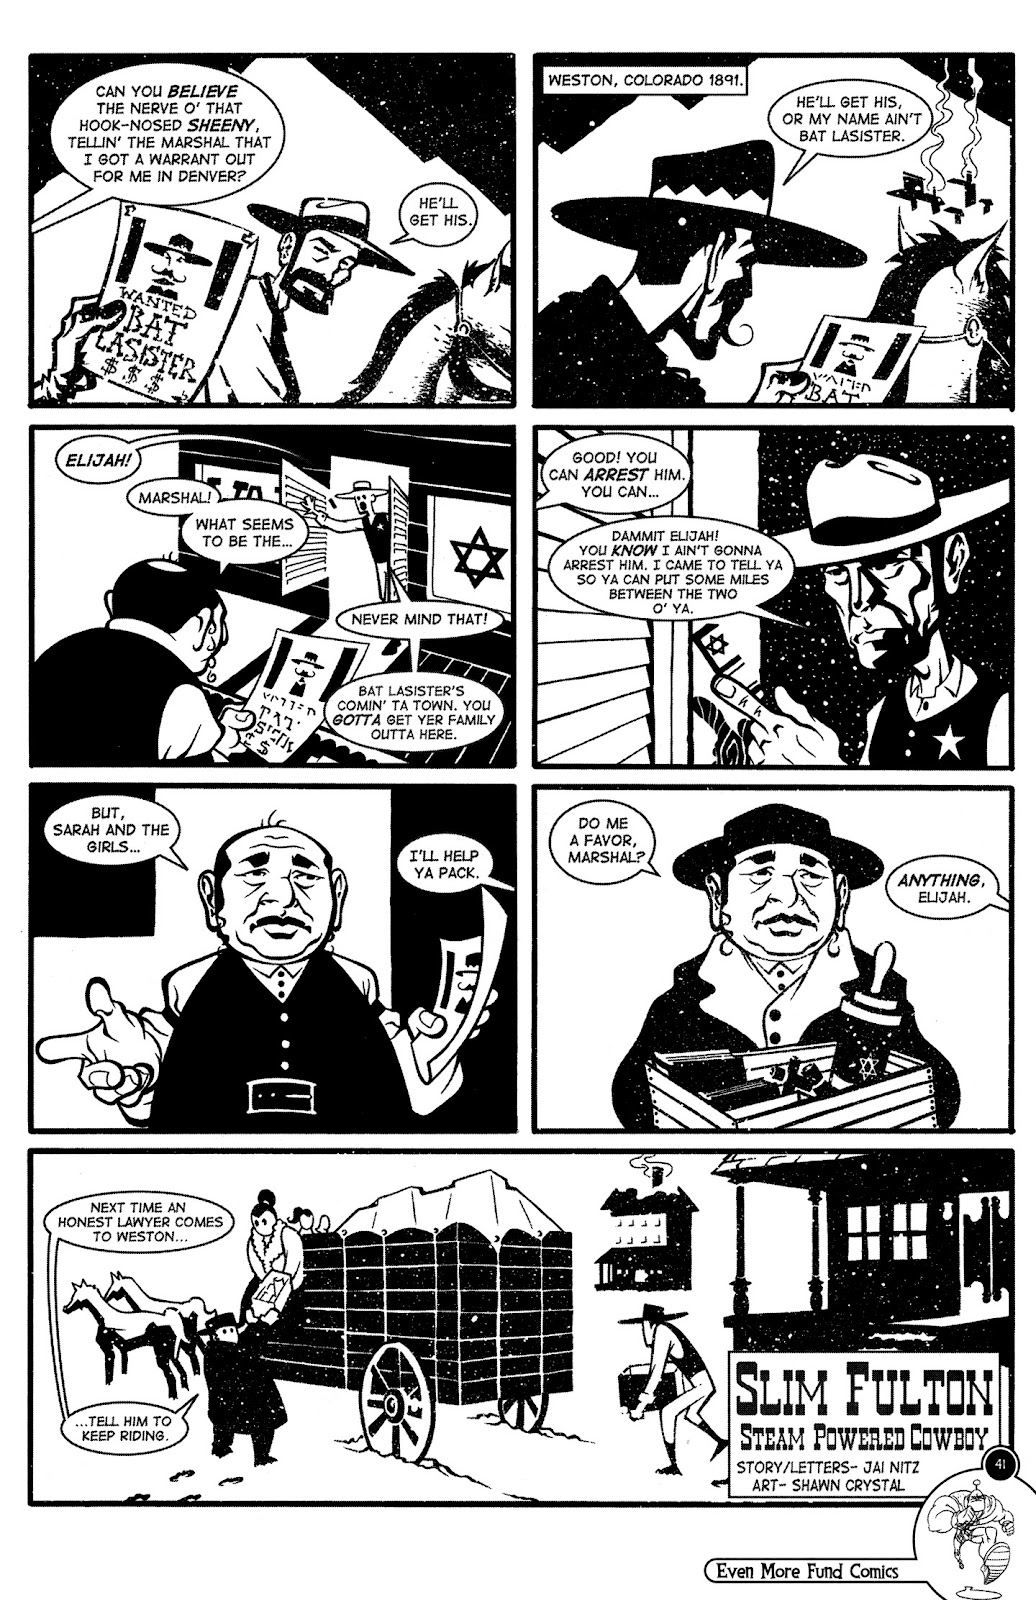 Read online Even More Fund Comics comic -  Issue # TPB (Part 1) - 41